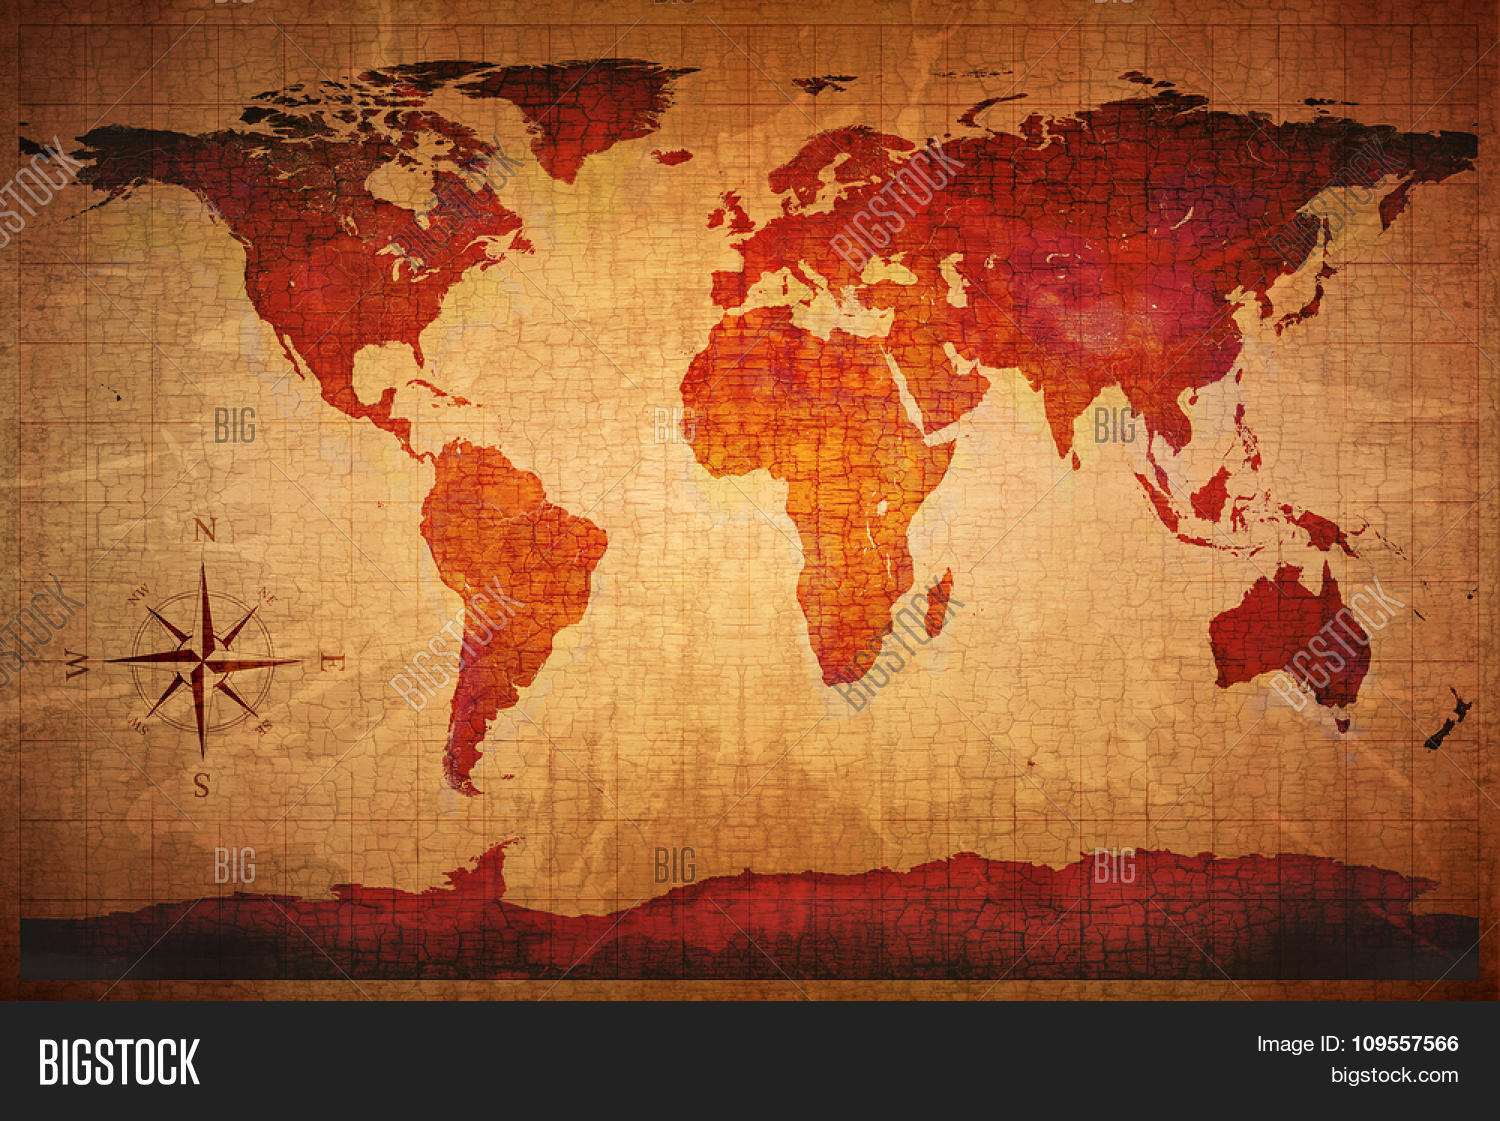 World map on old image photo free trial bigstock world map on old grungy antique and yellow cracked paper background map derived from nasa gumiabroncs Choice Image